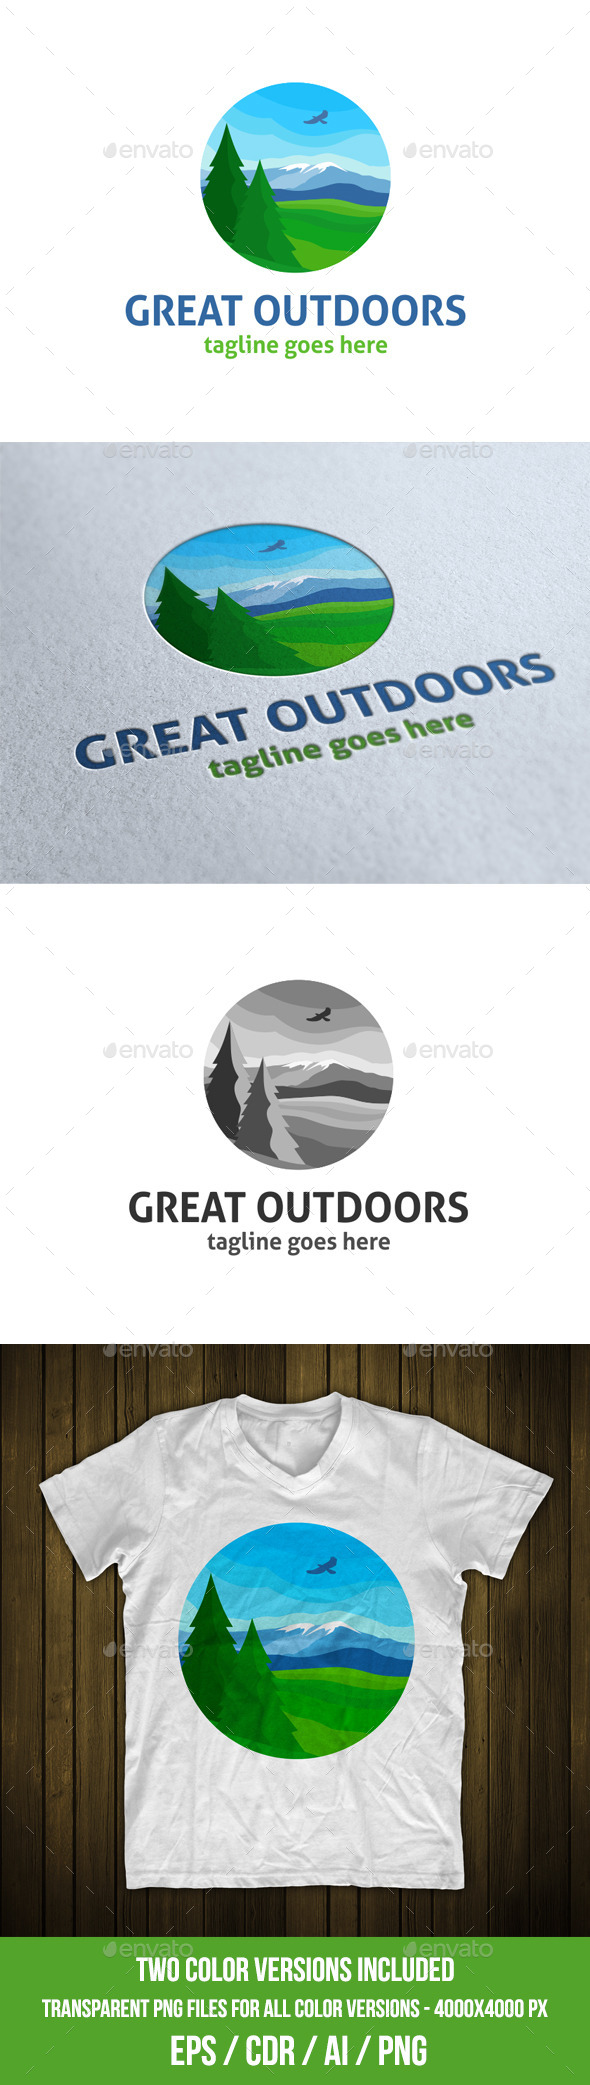 Great Outdoors Logo Template